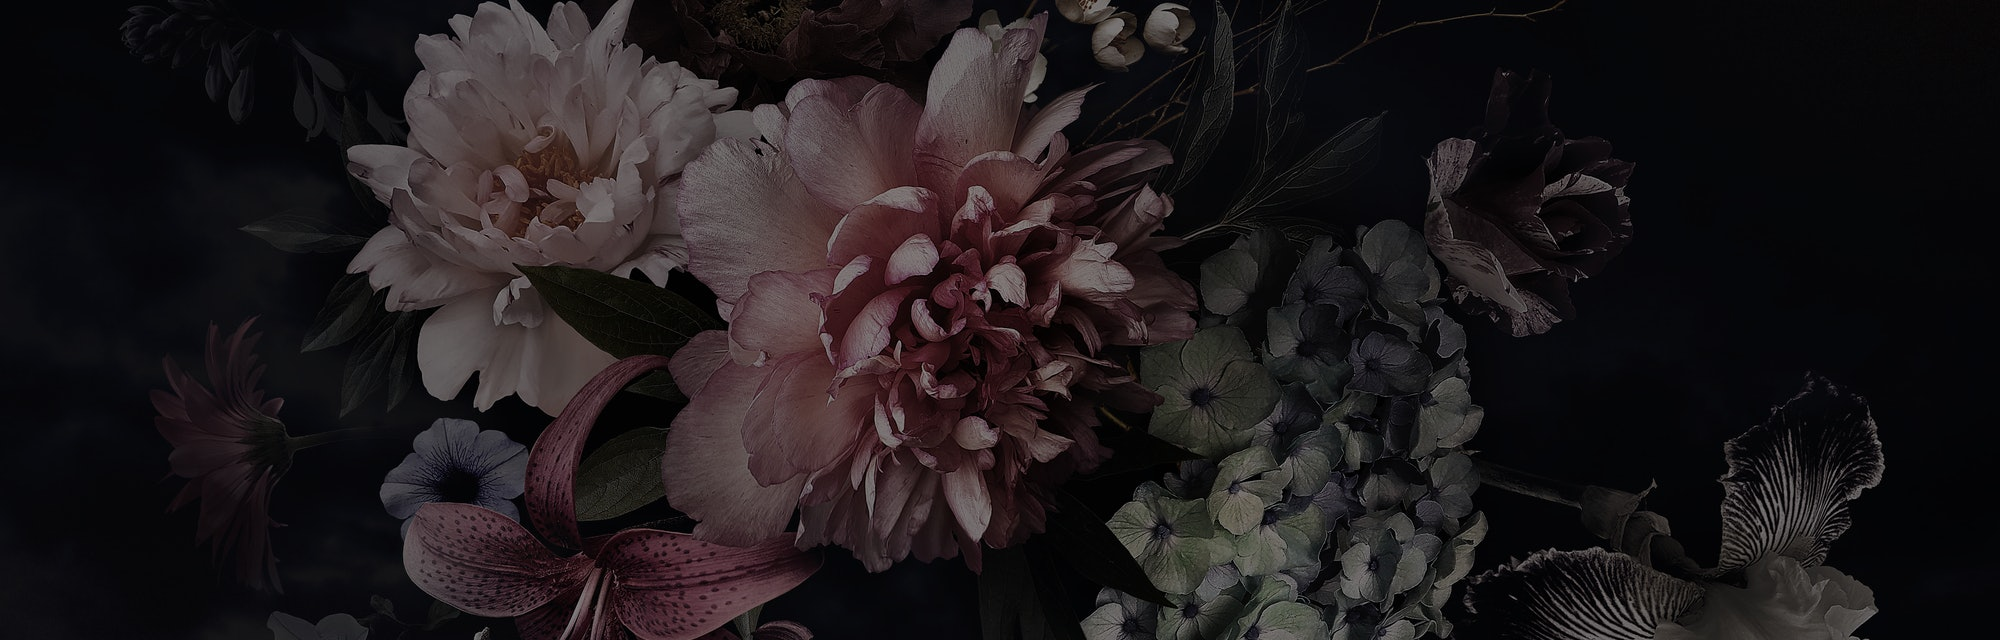 A bunch of peonies, tulips, lily, and hydrangea can be seen in front of a black background. The style appears to be Baroque in execution.